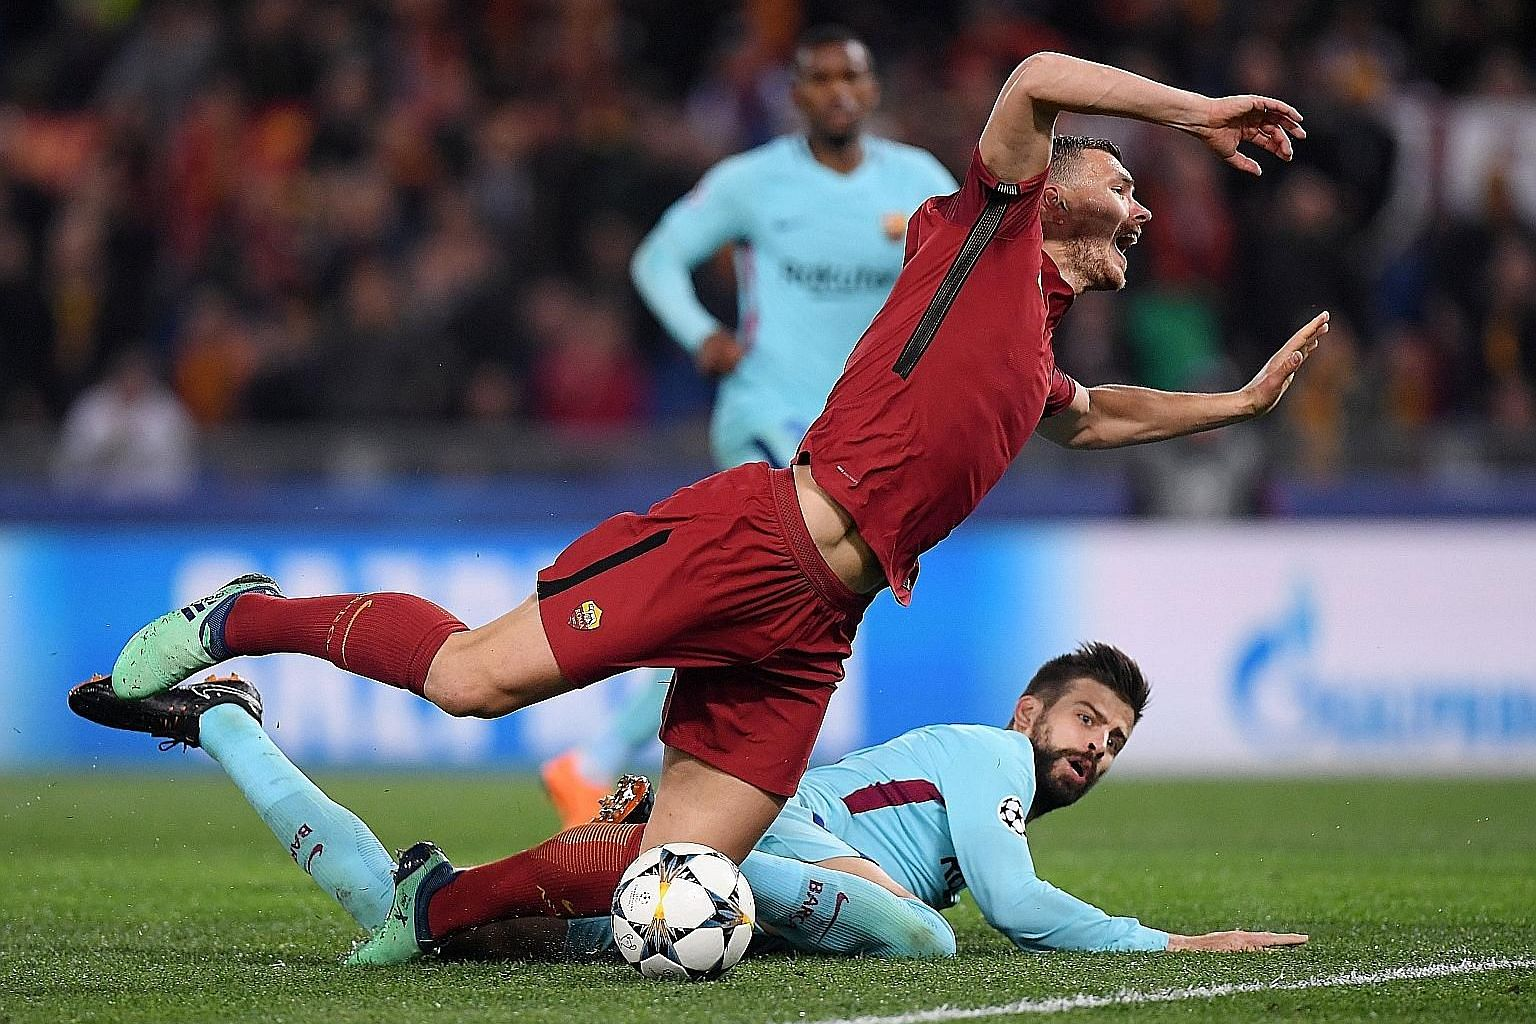 Roma's Edin Dzeko is fouled by Barcelona's Gerard Pique, resulting in a penalty which Daniele de Rossi converted to put his side 2-0 up.